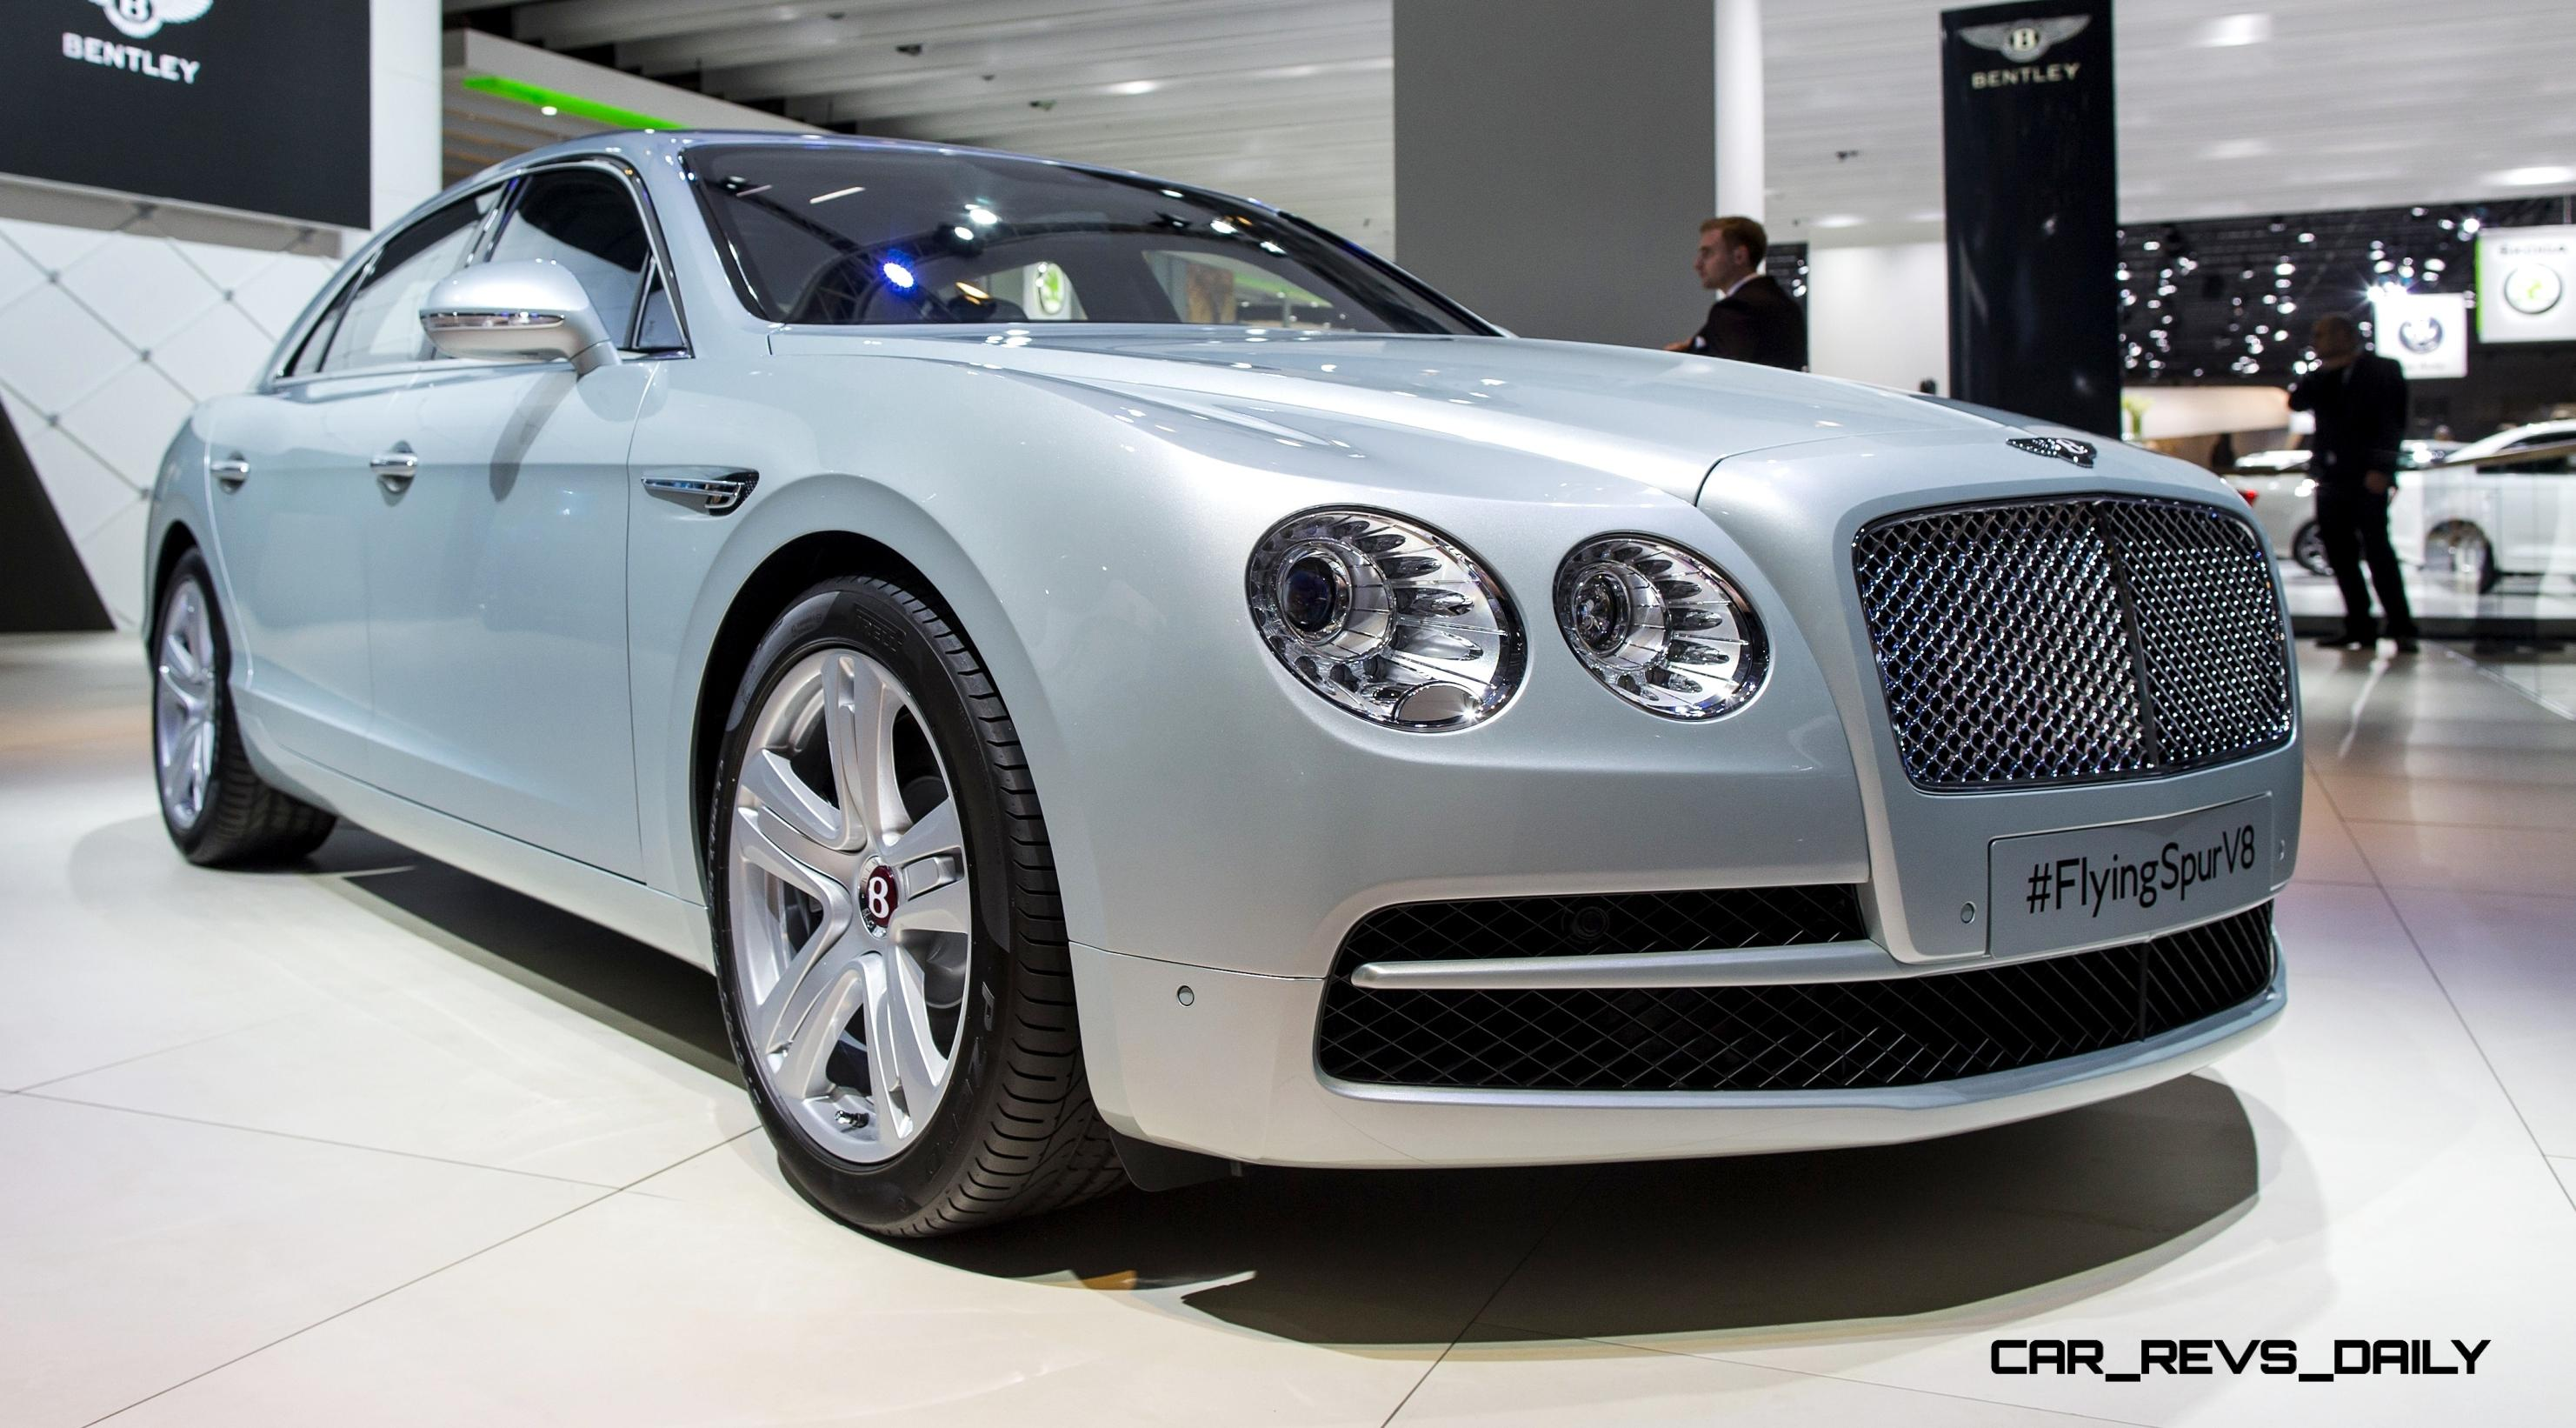 2015 bentley flying spur v8 debuts in moscow 53 high res photos. Black Bedroom Furniture Sets. Home Design Ideas